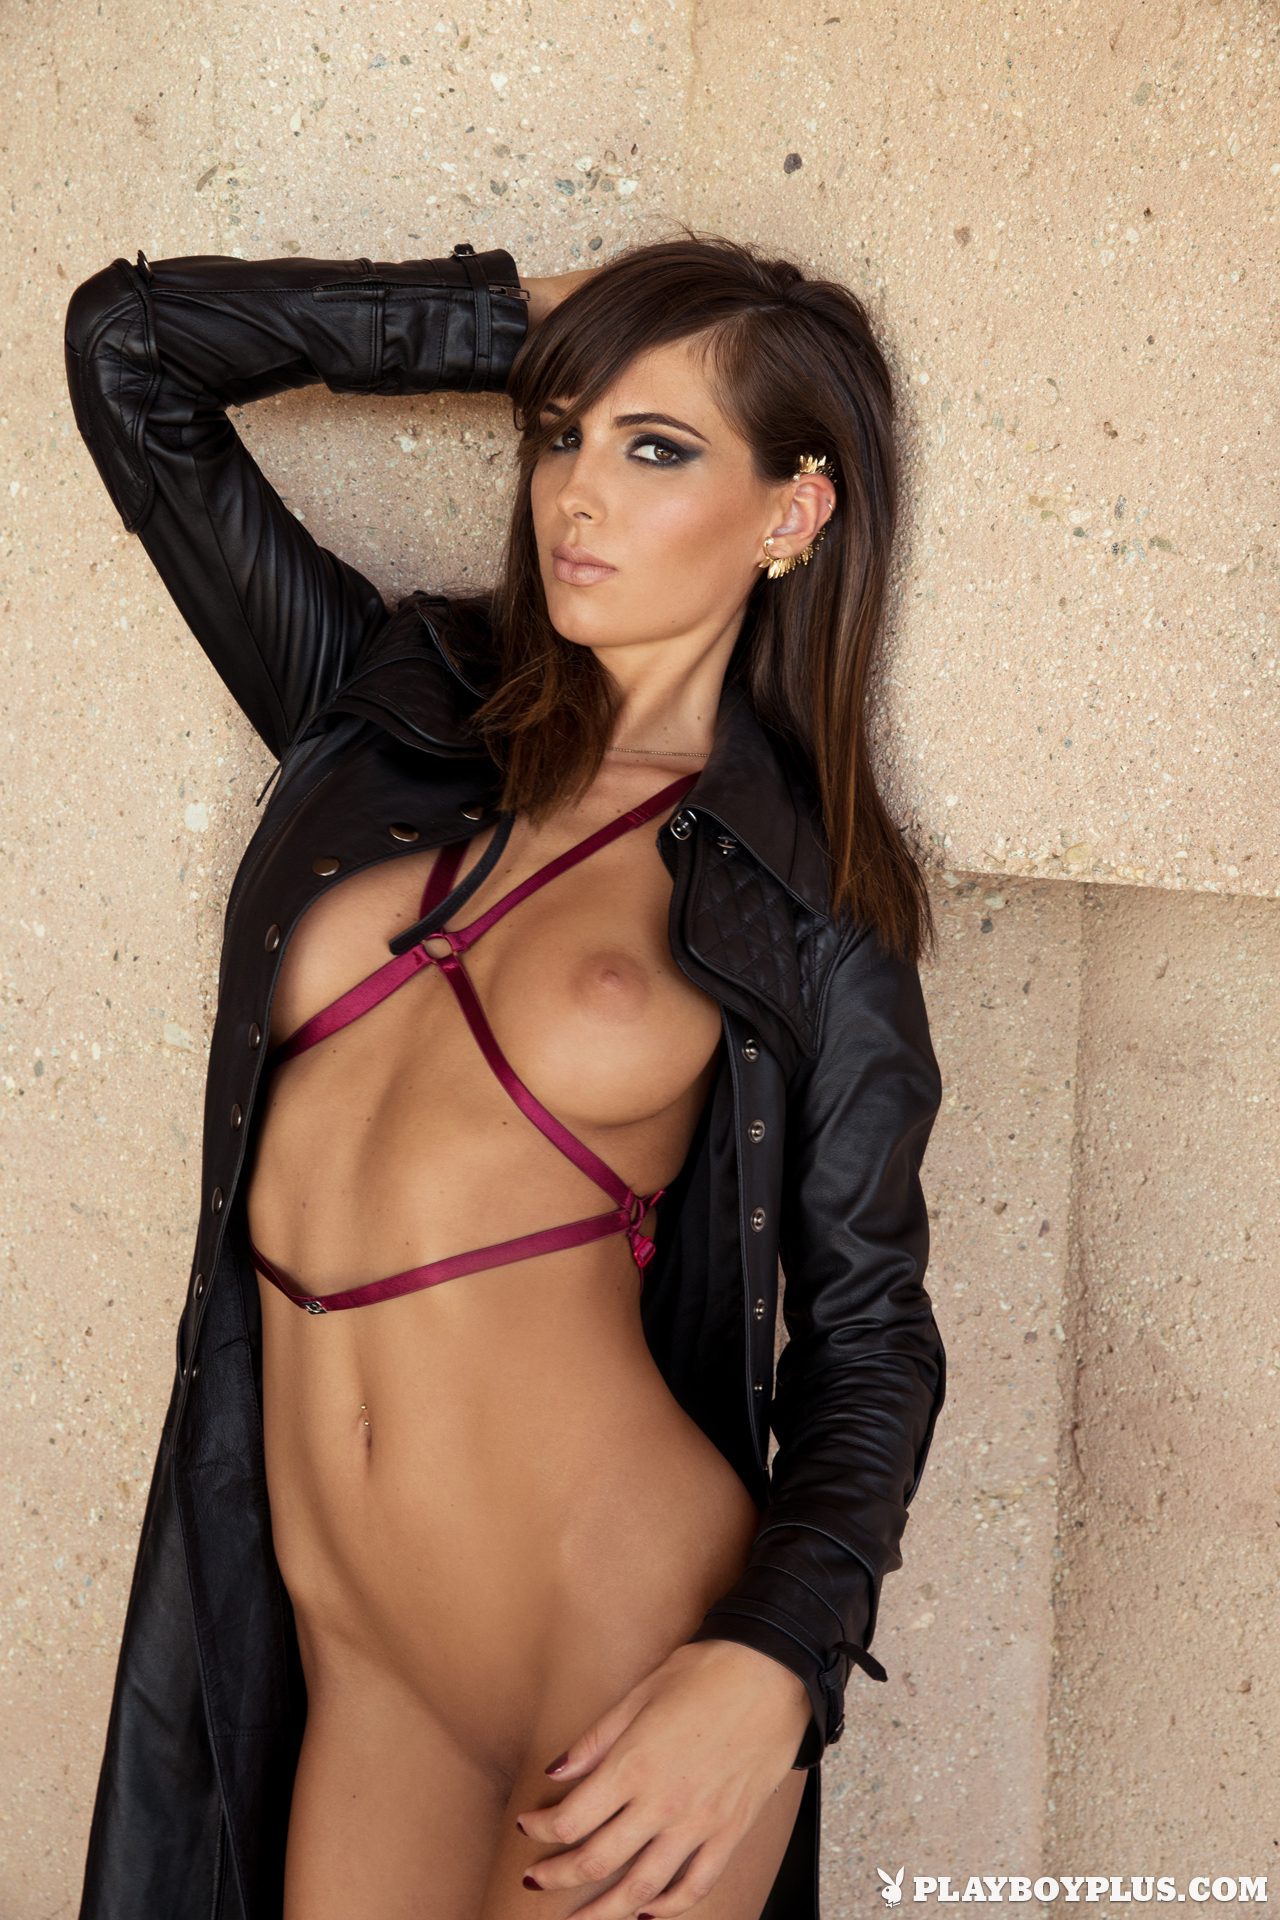 hottest playboy playmates nude gallery